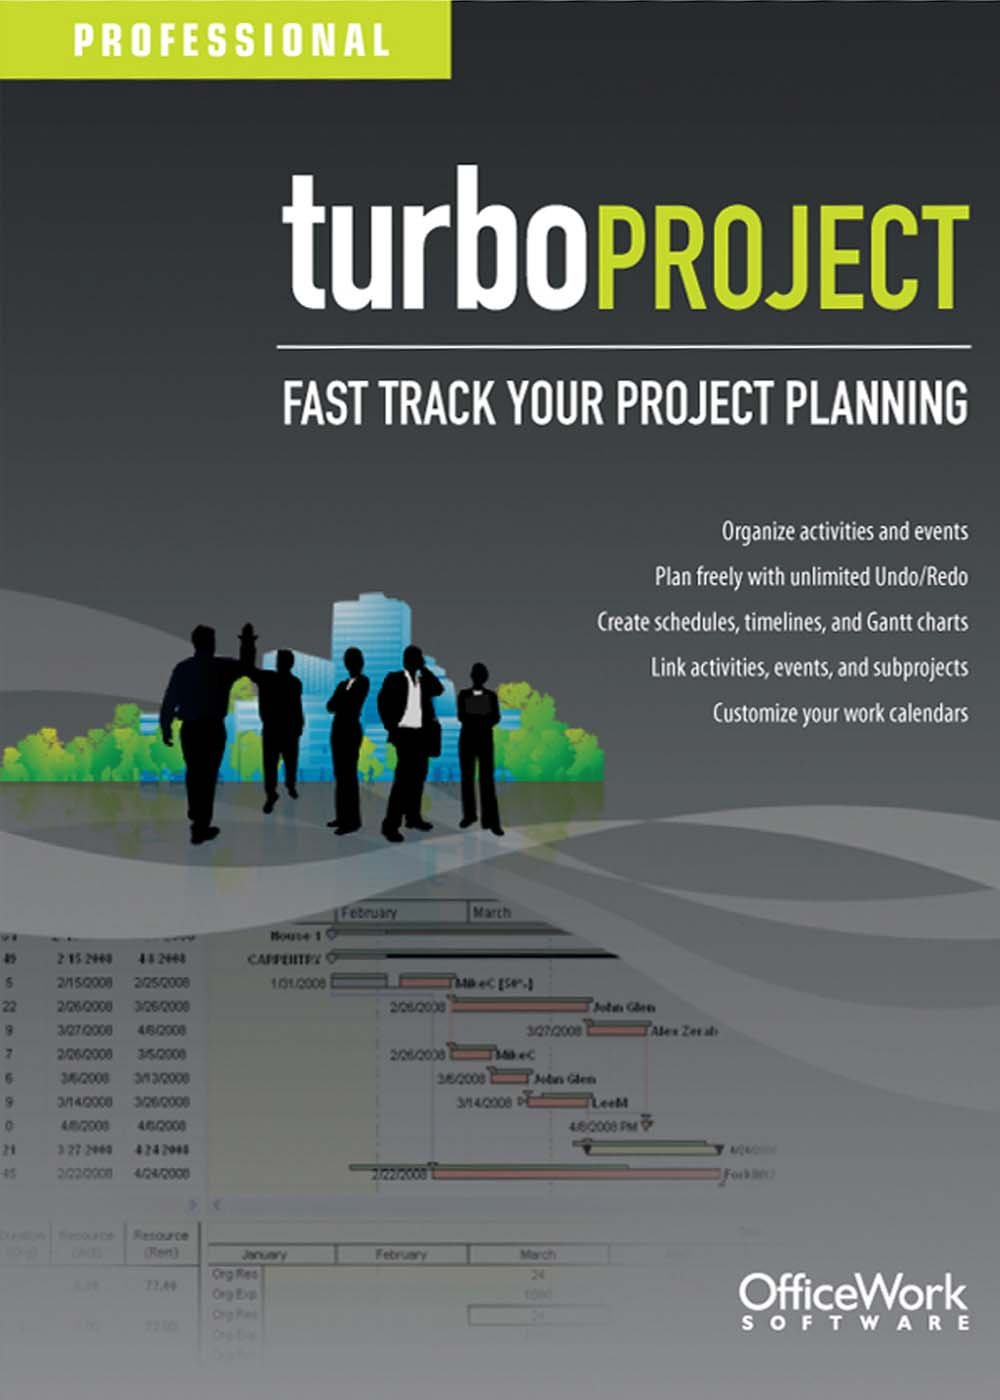 Turboproject express fast track your project planning 2017